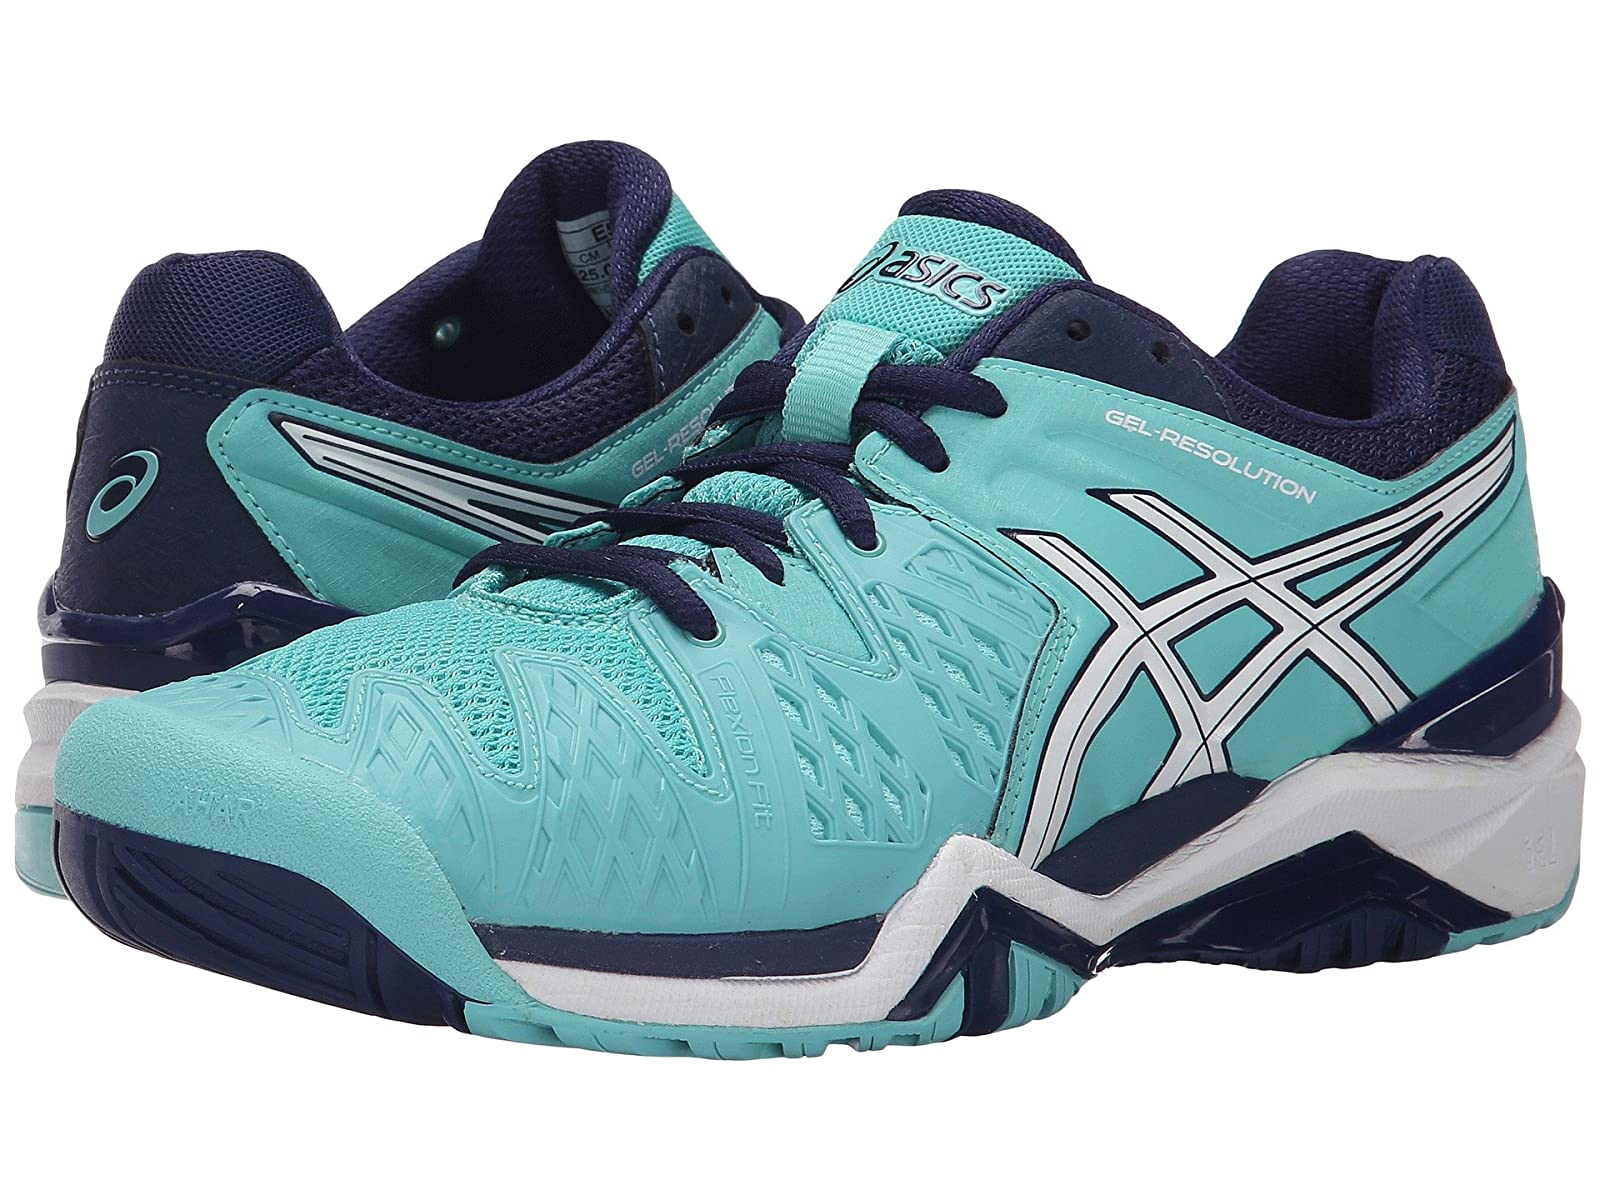 ASICS GEL-Resolution® 6Cheap and distinctive eye-catching shoes